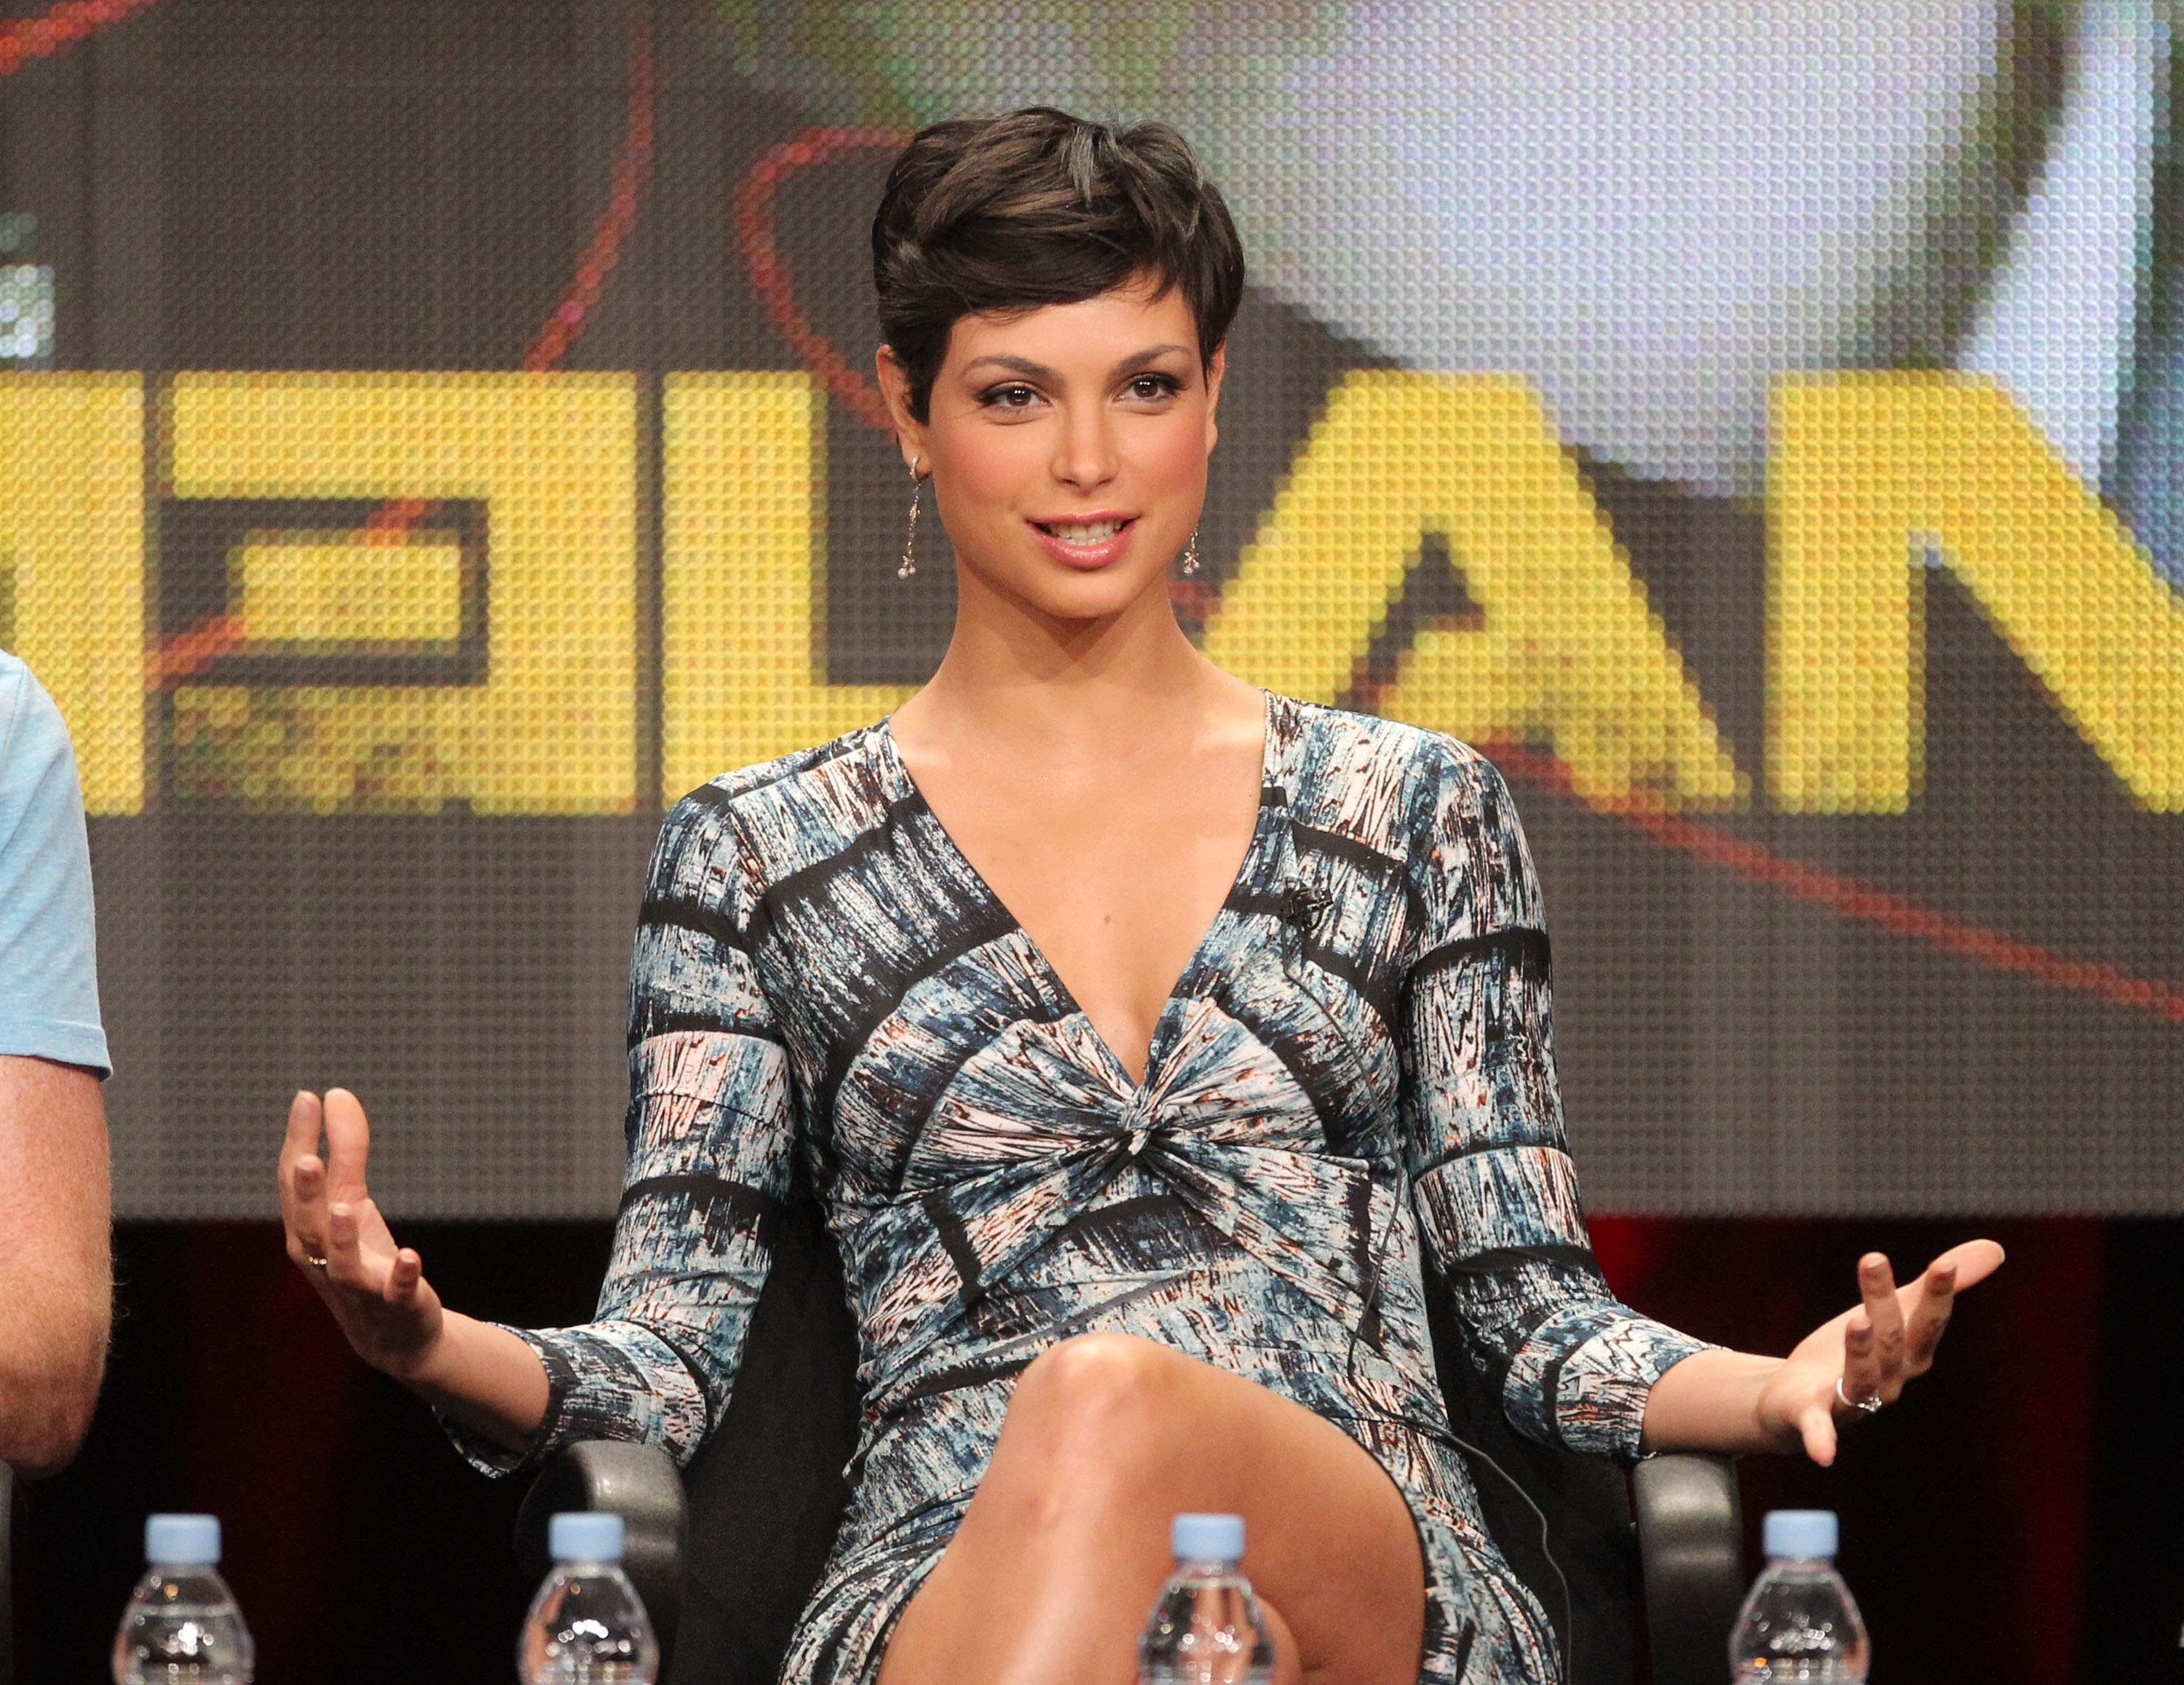 Morena Baccarin Leaving V Her Short Haircut Behind For Showtime Drama Homeland Access Online